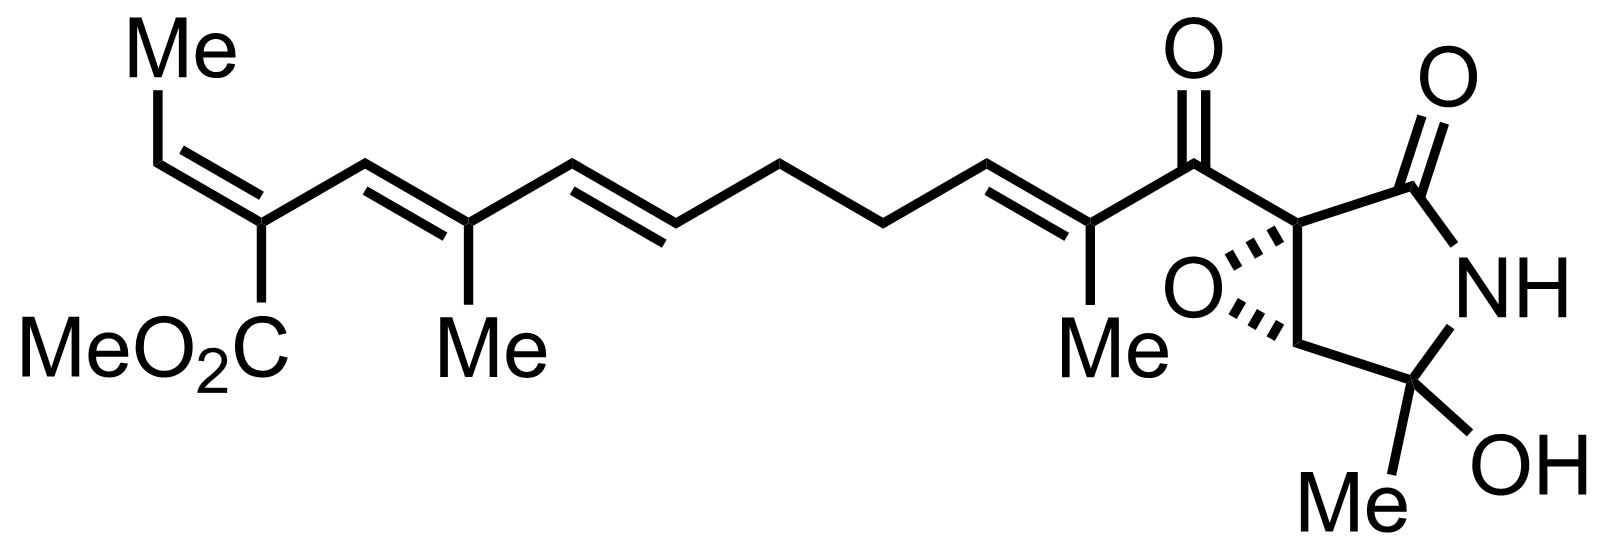 Structure of Epolactaene